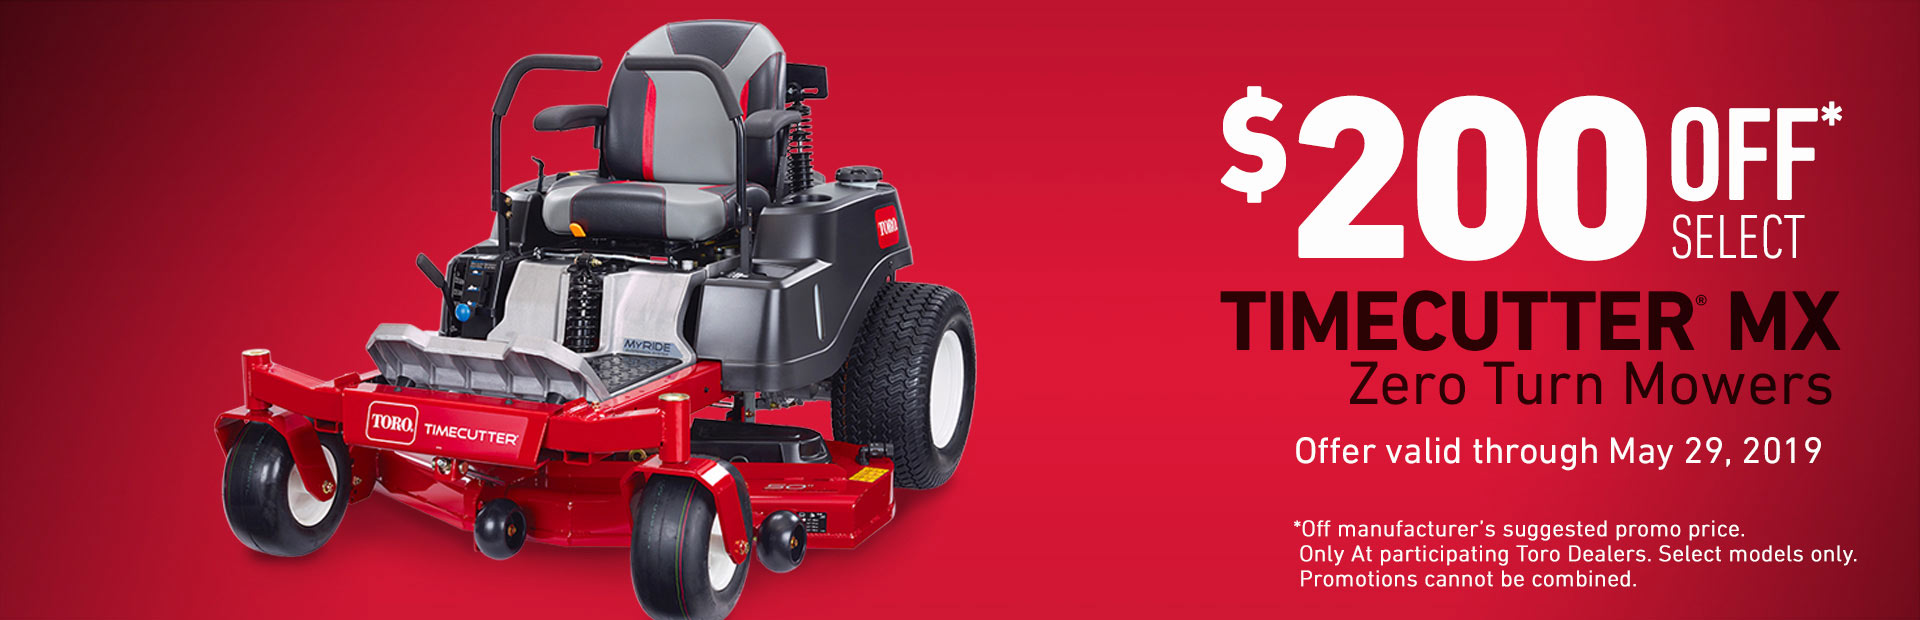 Toro® - $200 off select Timecutter MX Zero Turn Mowers. Offer valid through May 29, 2019.